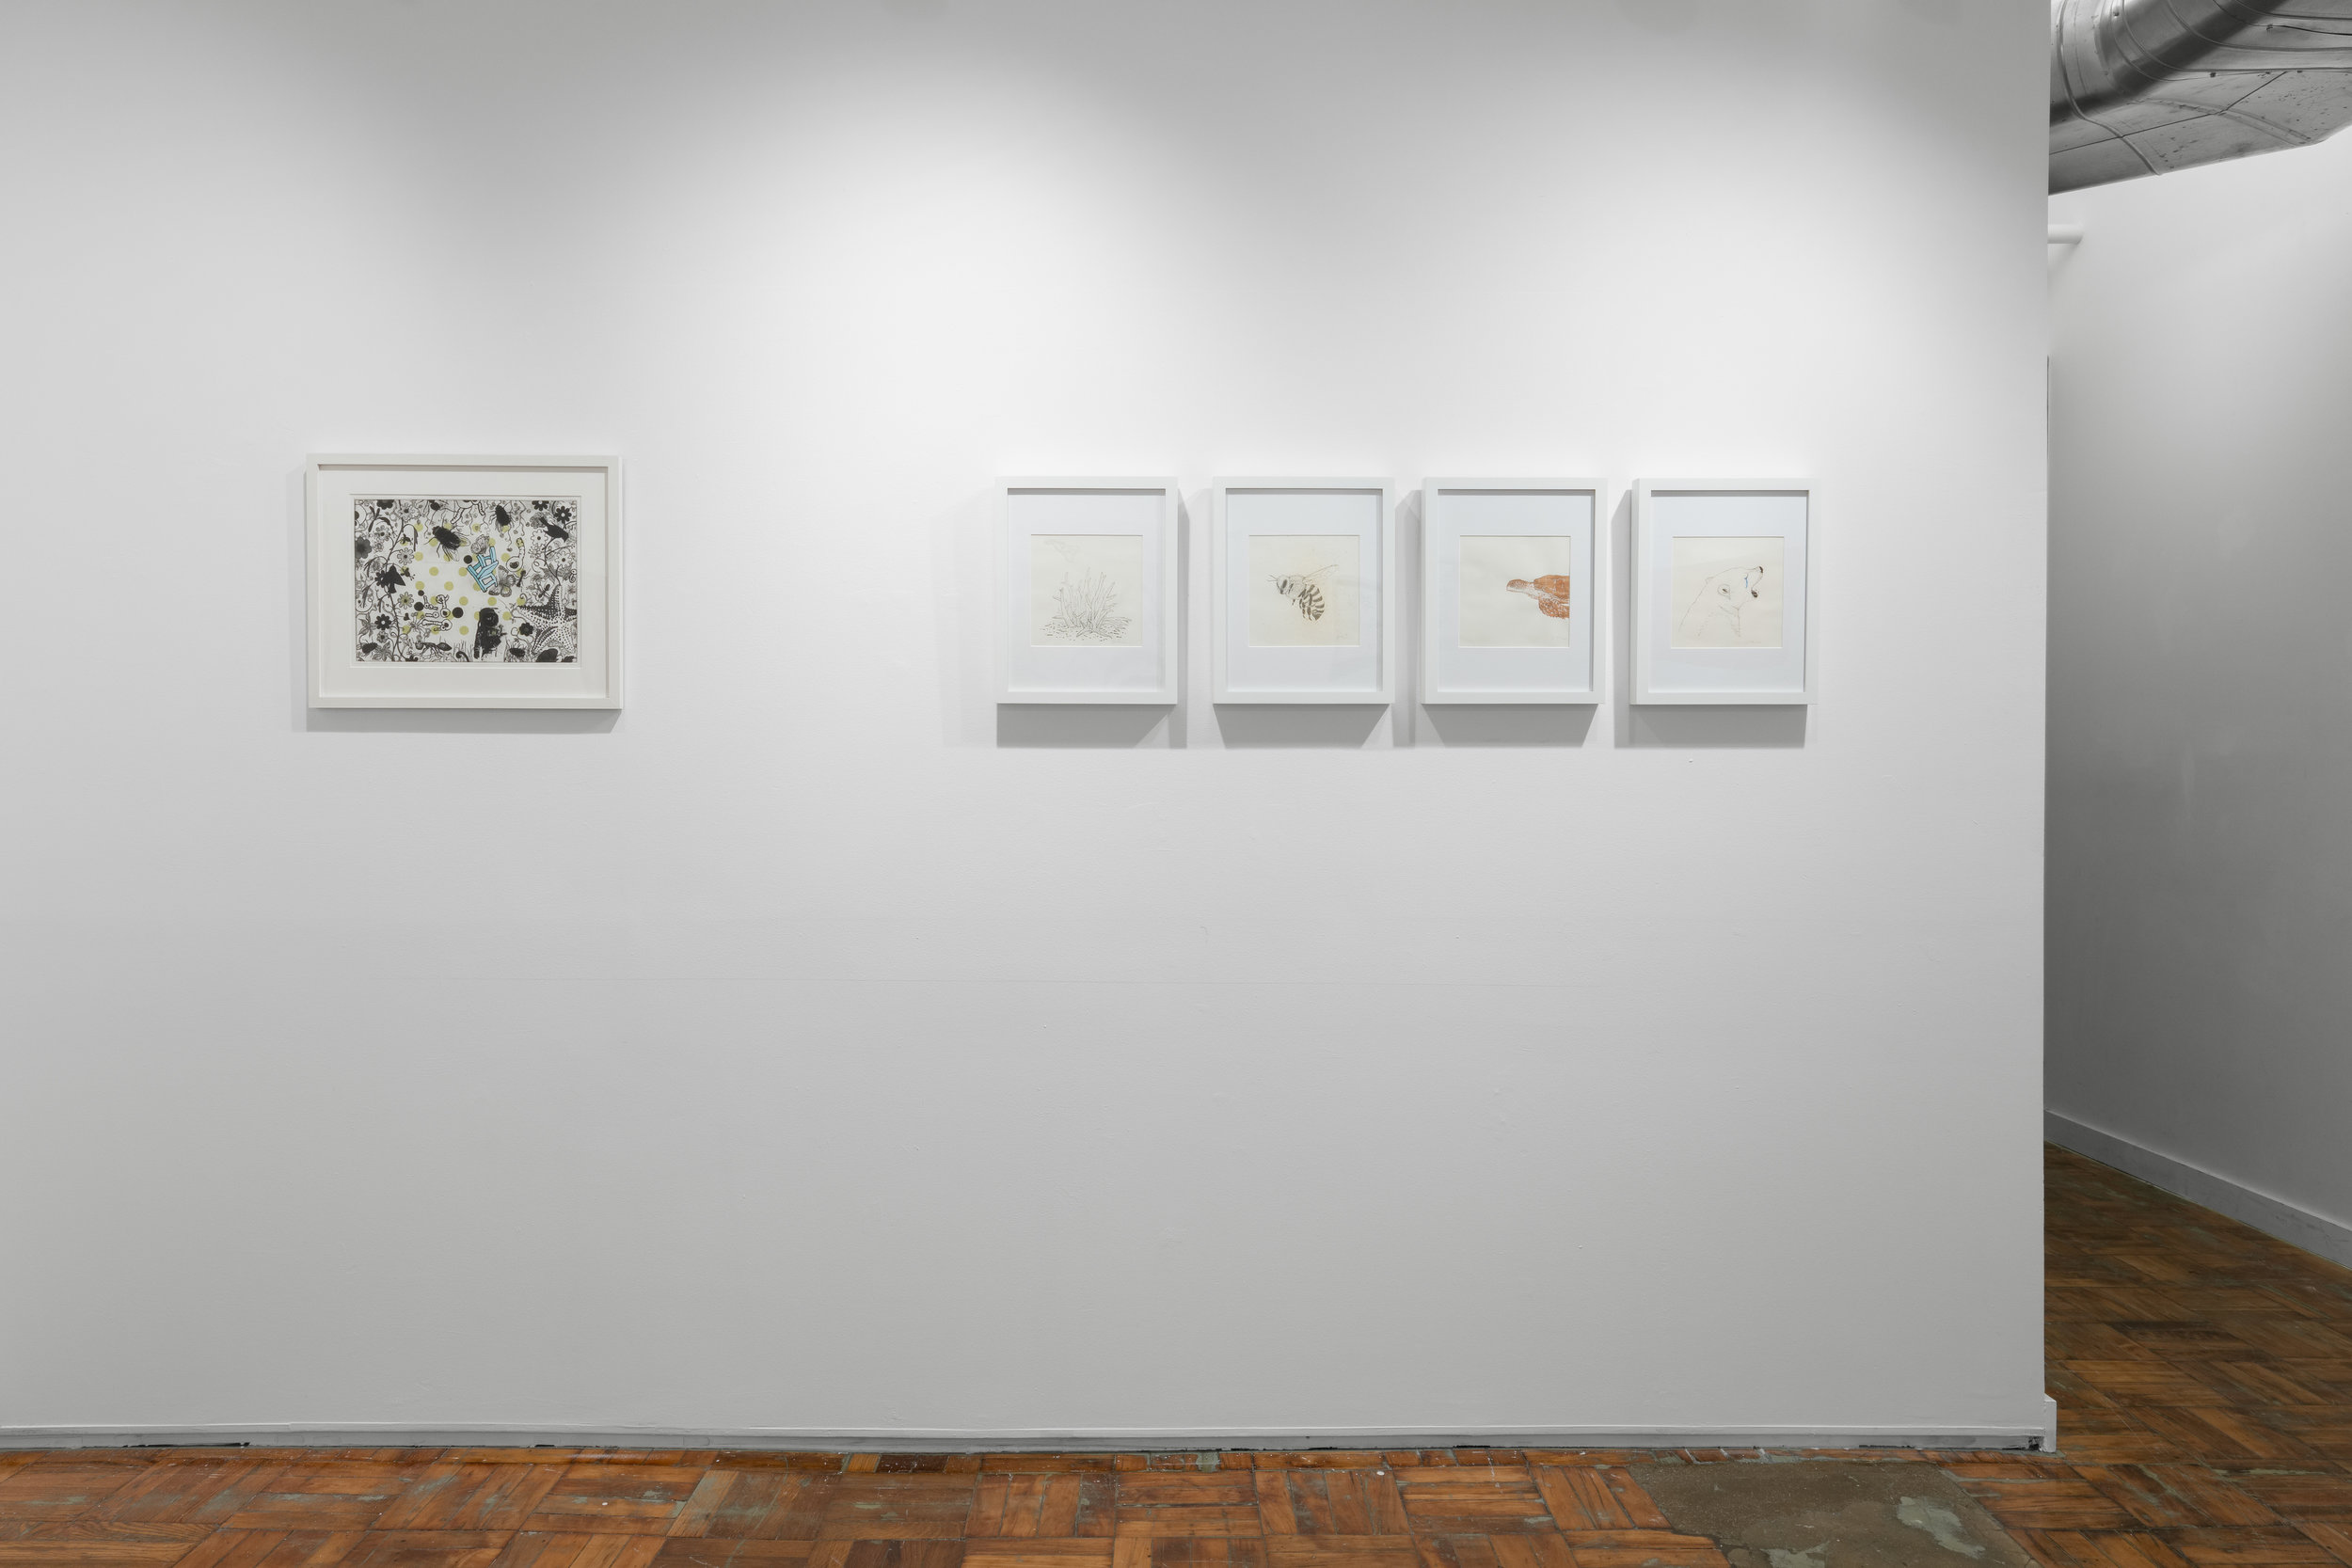 """Left: Vicky Tomayko,  Letting Everything Go , 2017. Etching, silkscreen, handcoloring on paper  Right: Meghan Quinn, Four from """"Totem"""" series:  Coral, Honeybee, Turtle, Polar Bear , 2017. India ink with acrylic on paper"""